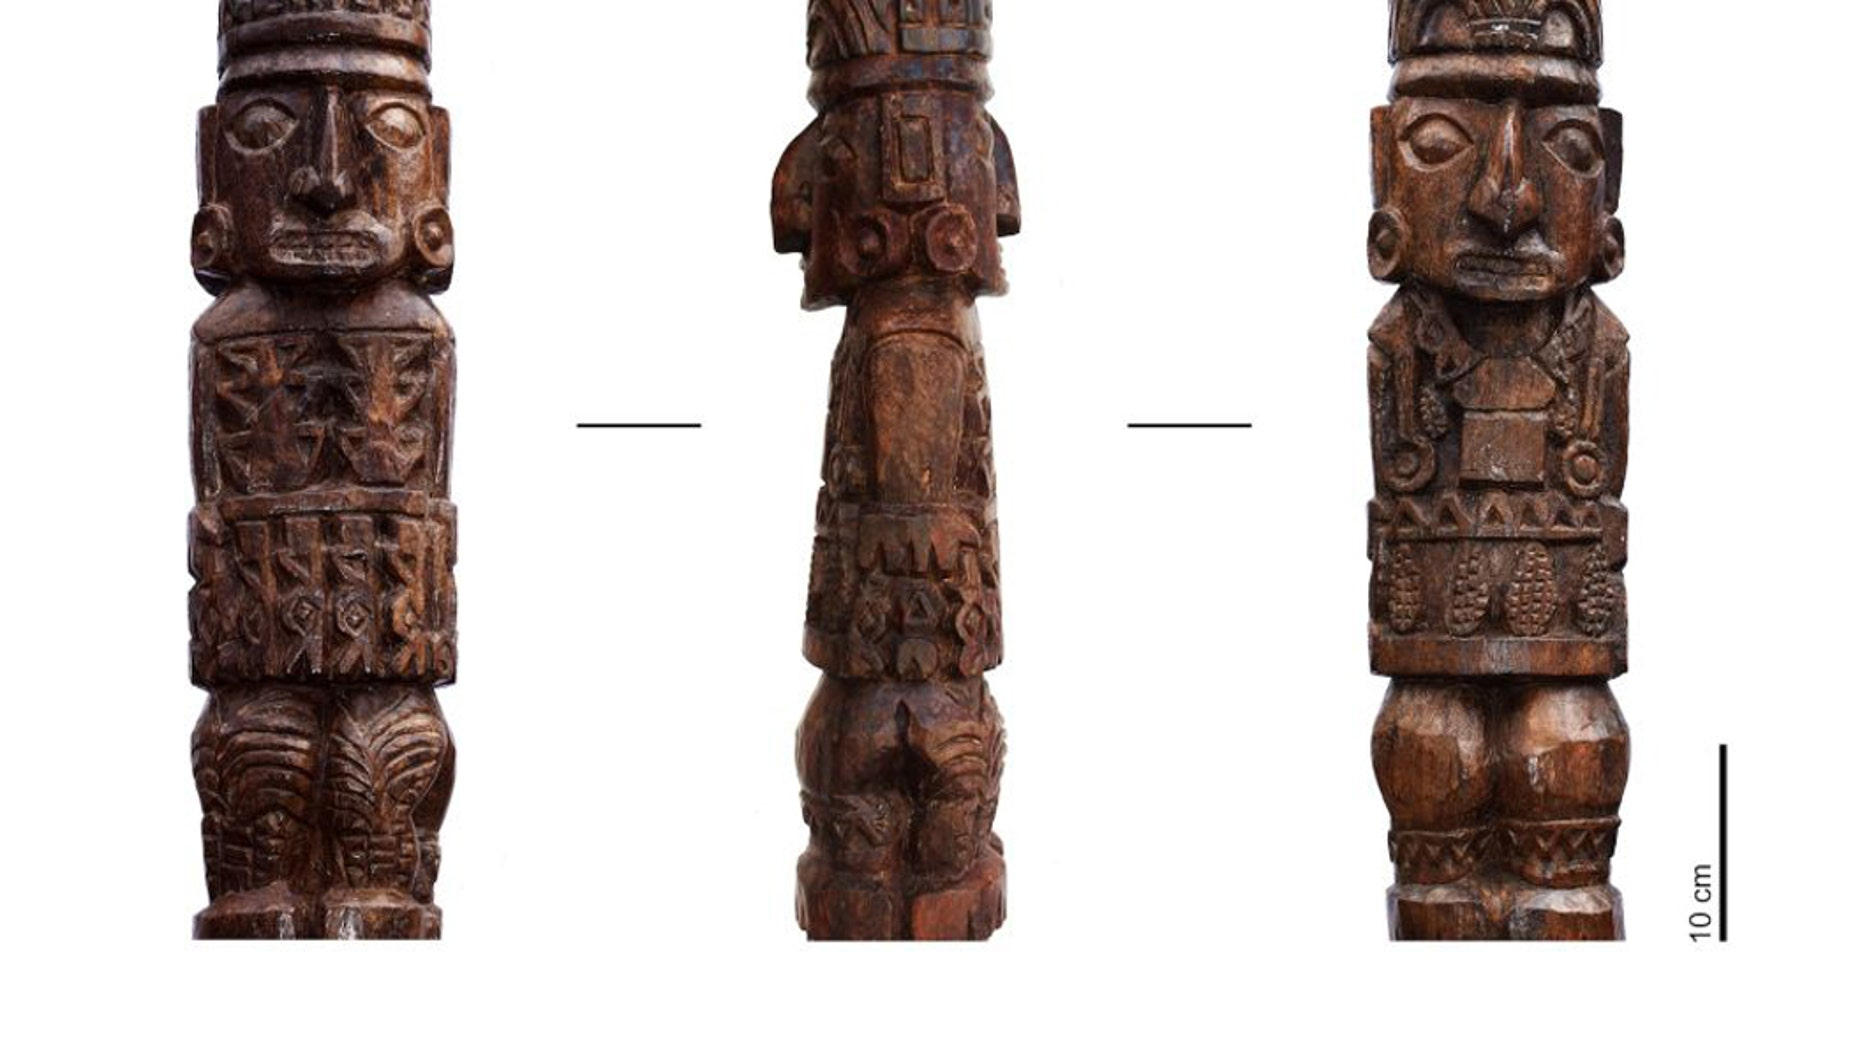 The Pachacamac idol, long thought to be destroyed by the Spanish conquistadors in 1533, was discovered in 1938. (Image: © Sepúlveda et al, 2020; Copyright Project INCA, OPUS Programme, Sorbonne Université)